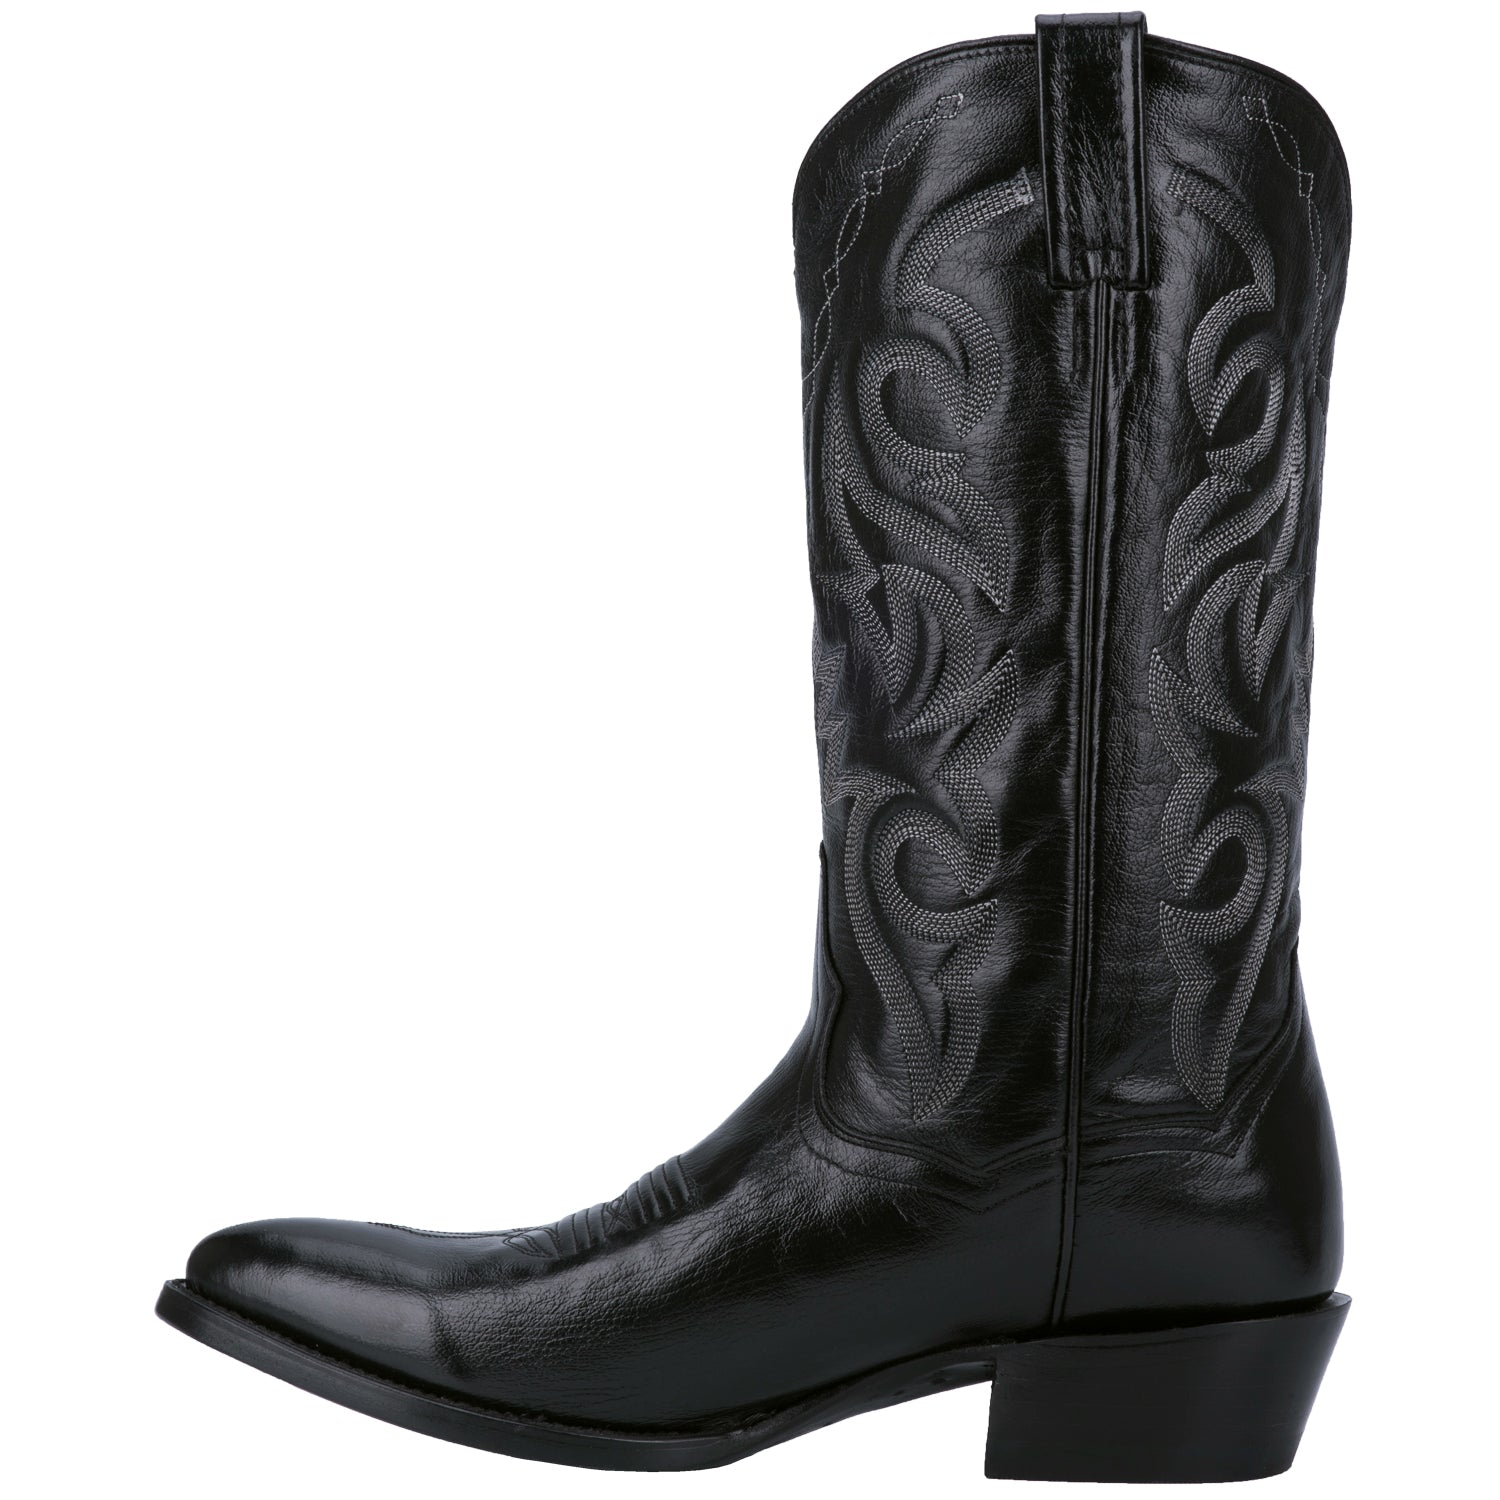 MILWAUKEE LEATHER BOOT 4253942939690